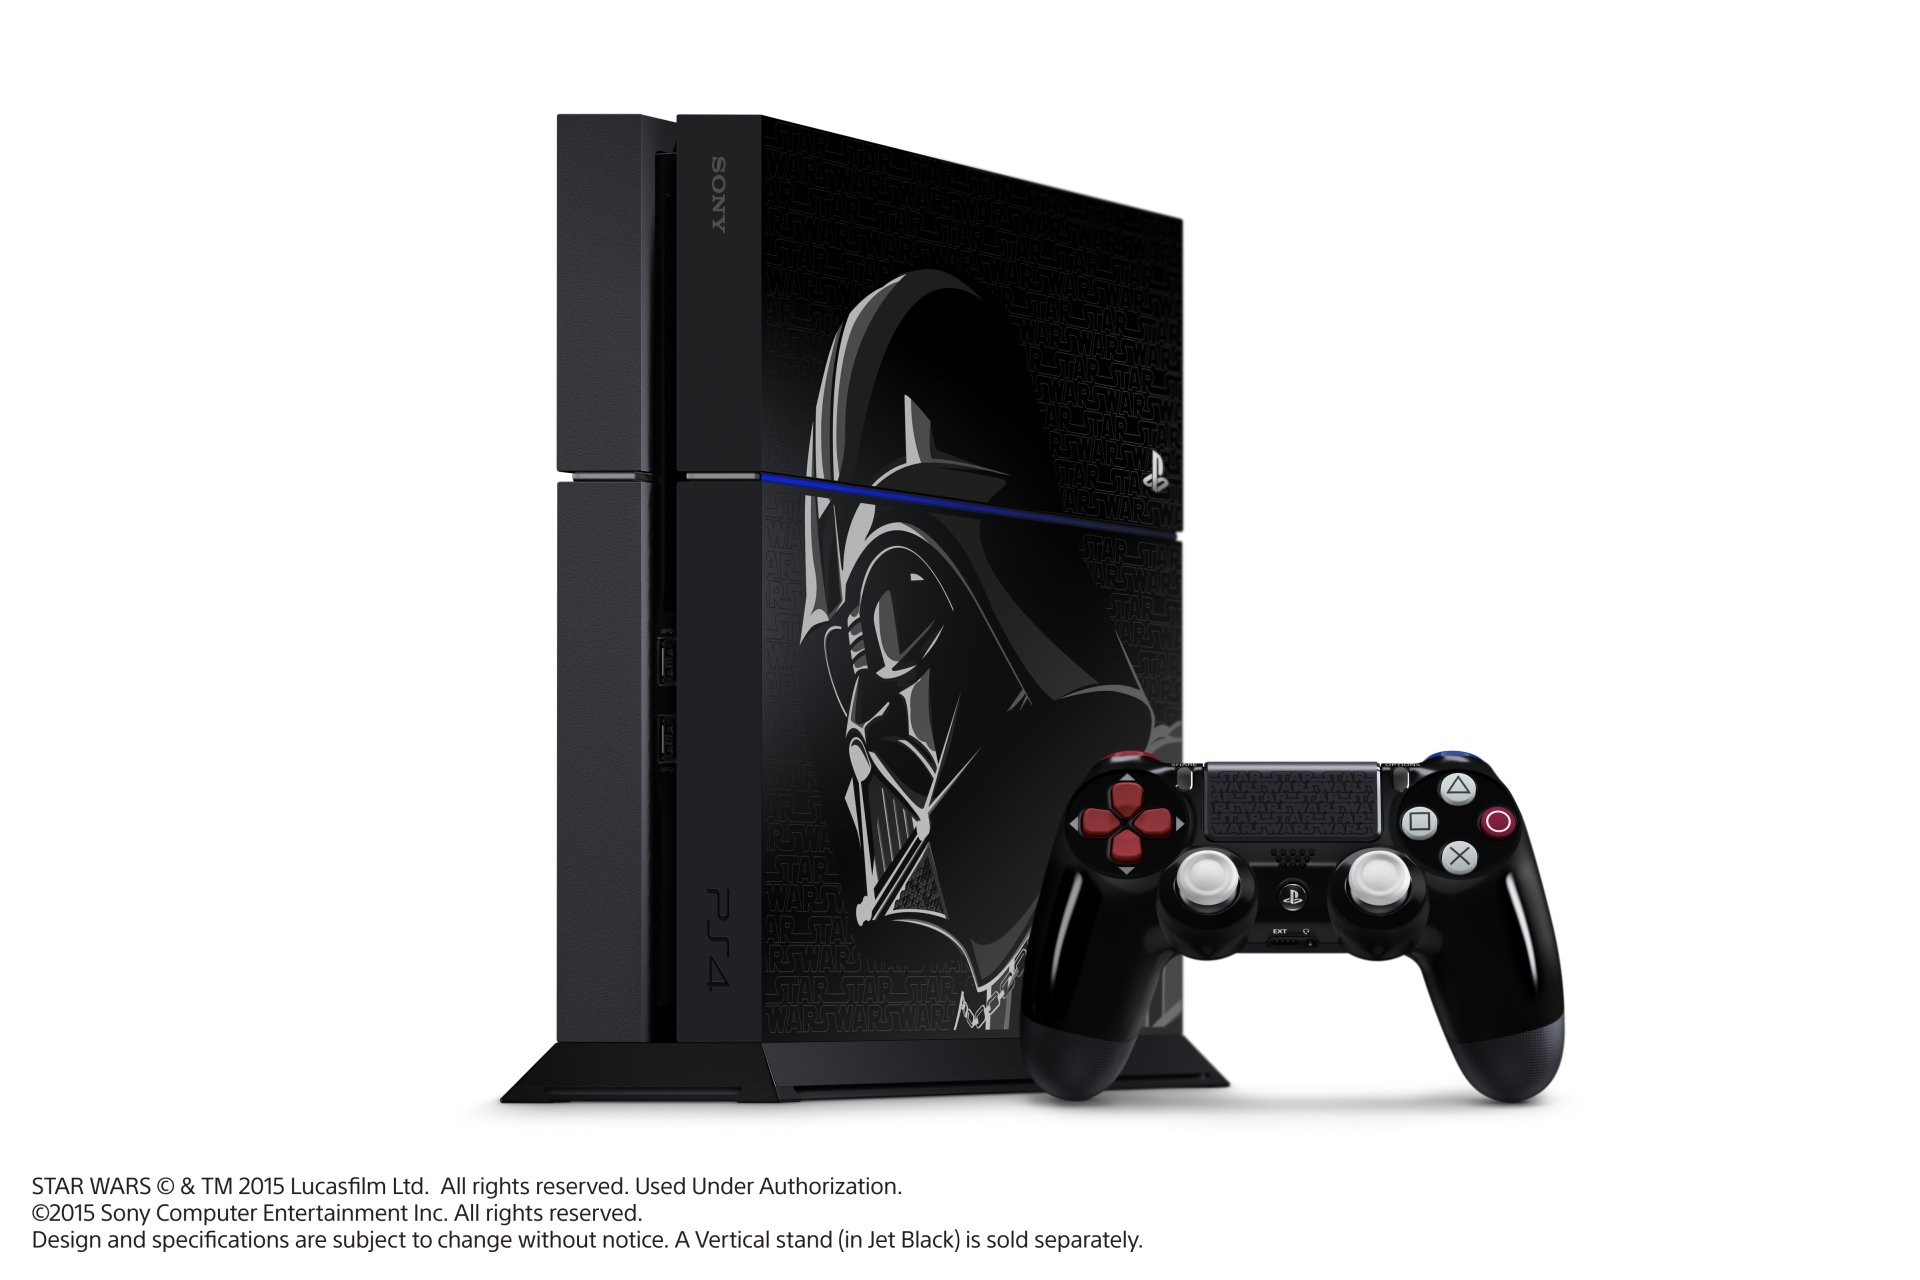 Limited edition darth vader playstation 4 console is revealed niche gamer - Ps3 limited edition console ...